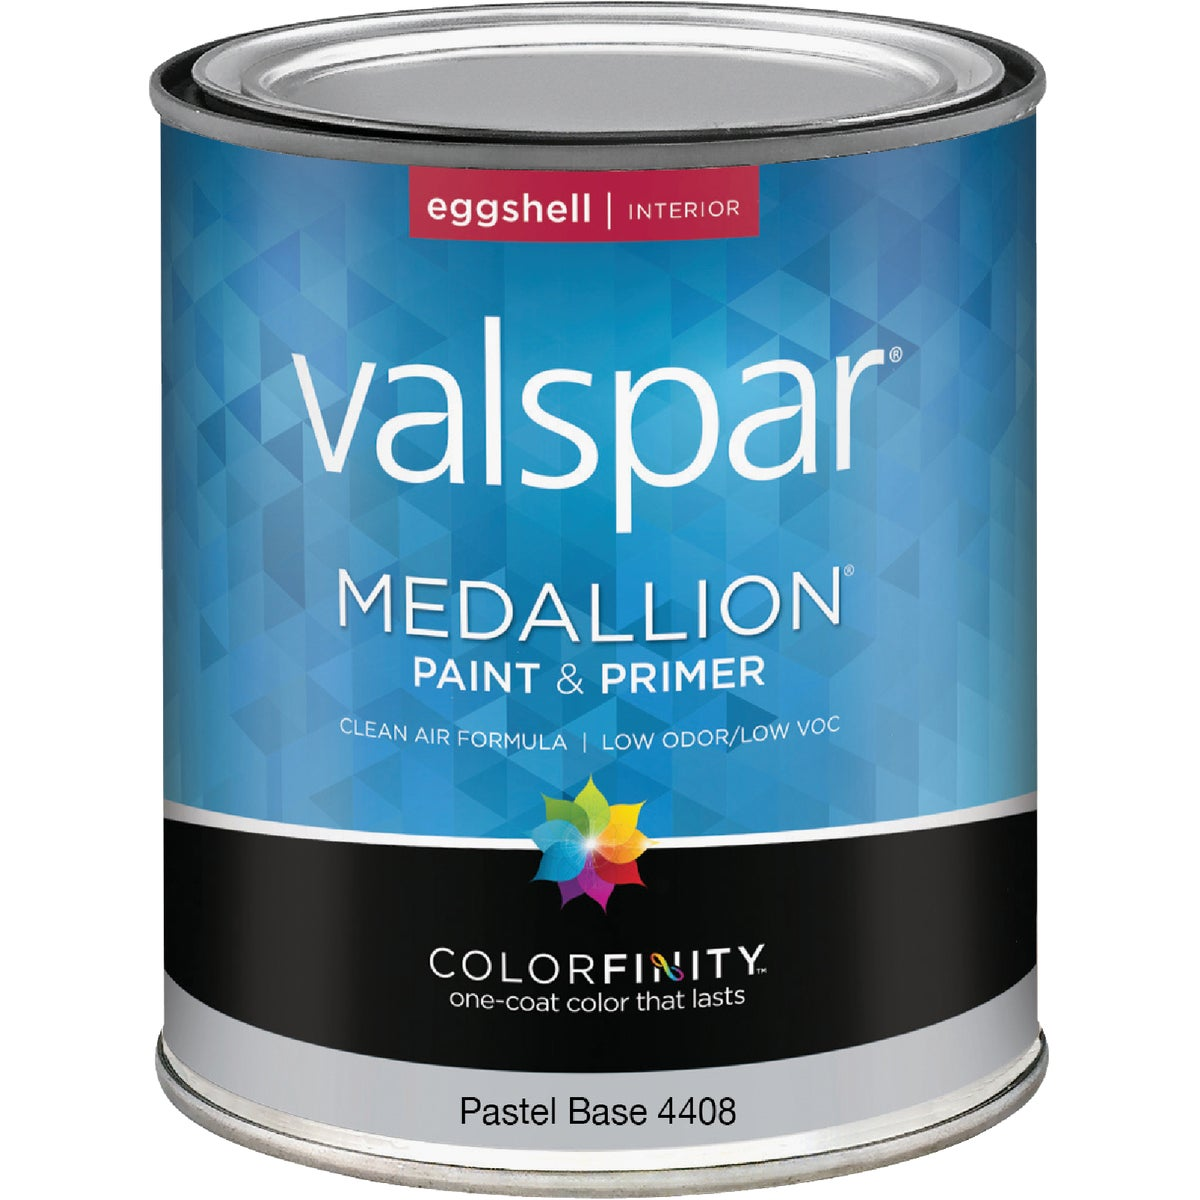 INT EGG PASTEL BS PAINT - 027.0004408.005 by Valspar Corp